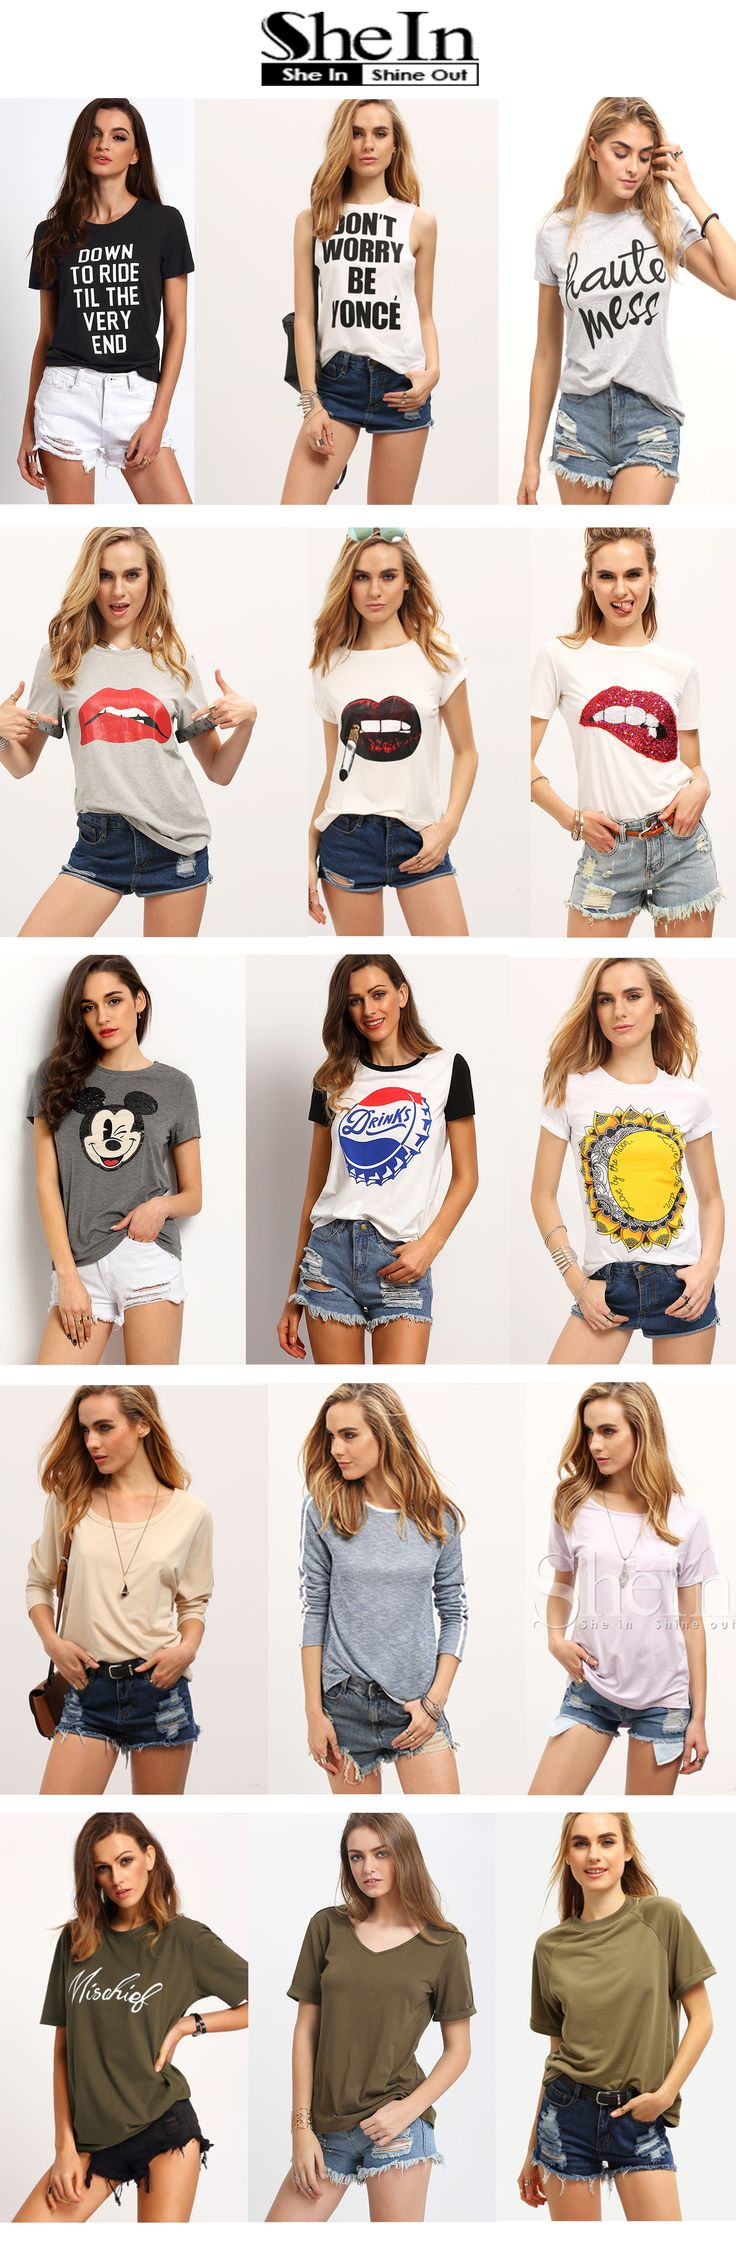 "What kind of tops do you prefer for cozy summer days? Lovely lip print t-shirt, tumblr funny tee, cool print graphics, or just plain casual tshirt? My answer is "" all of them "" !"